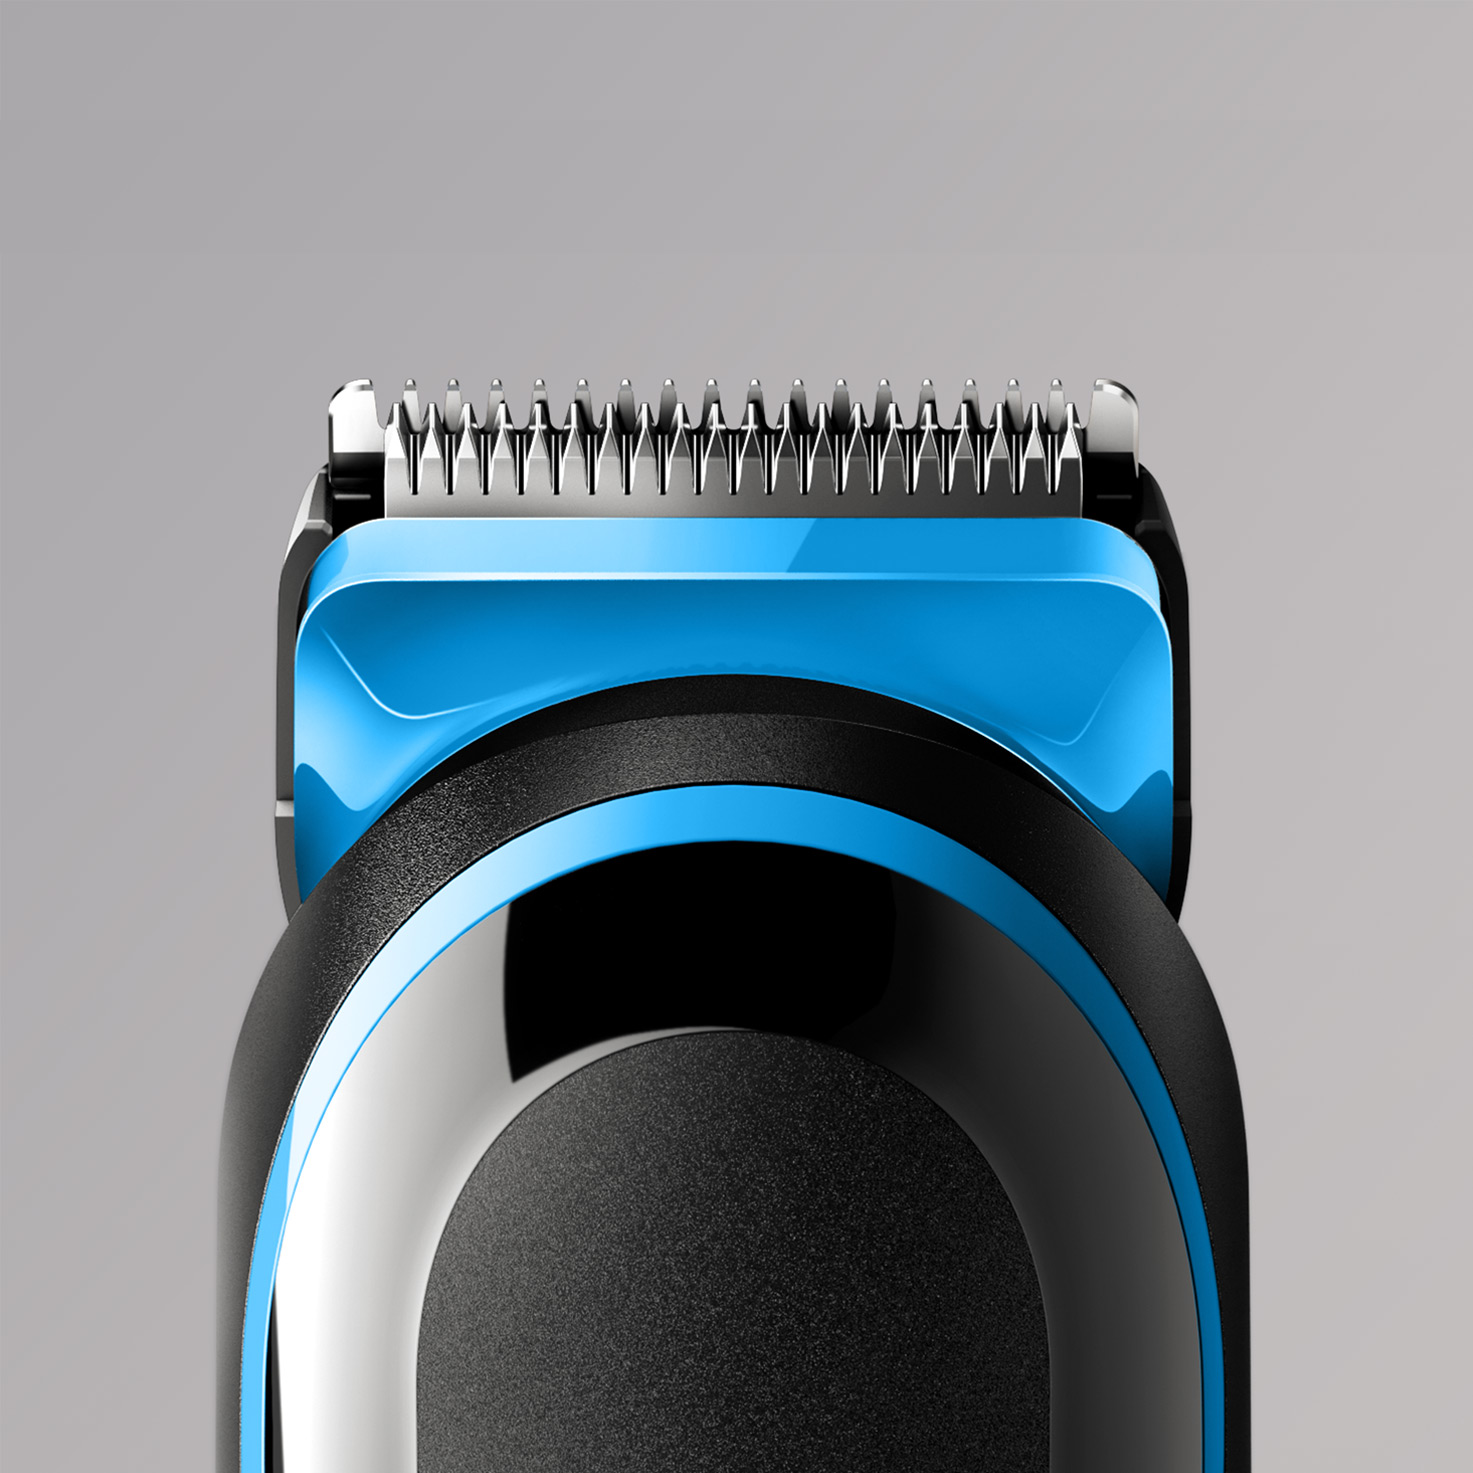 Braun All-in-one trimmer MGK5045 - Lifetime sharp blades